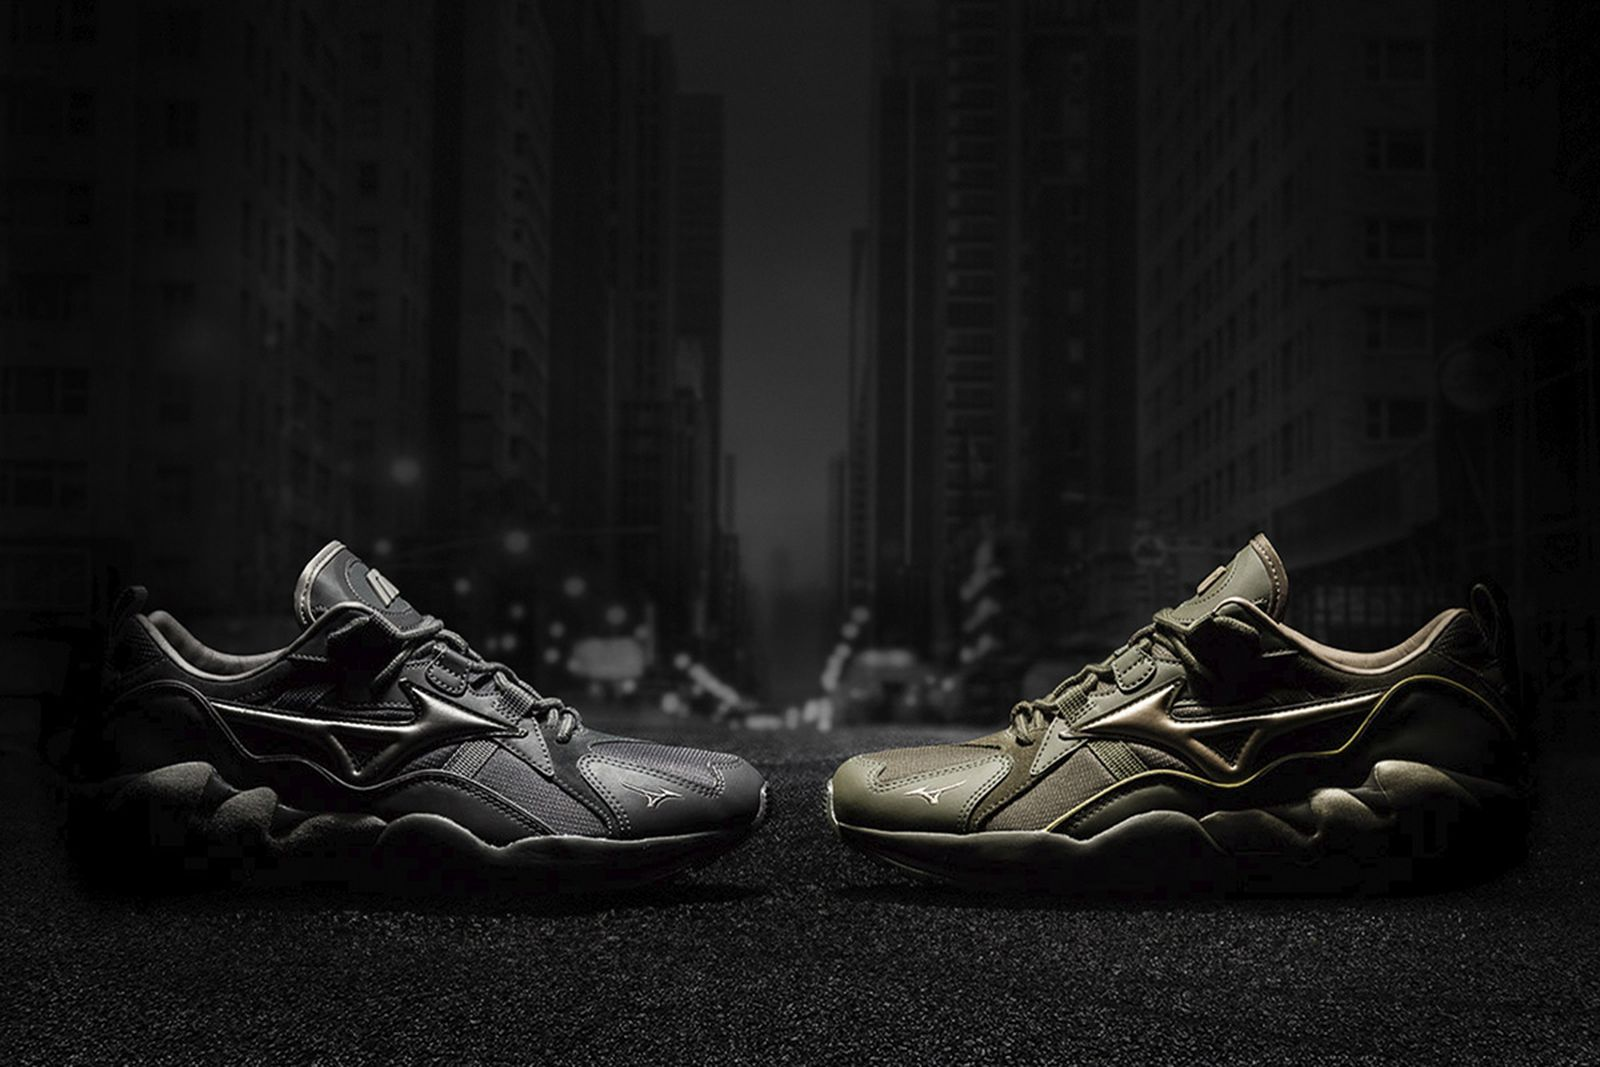 mizuno wave rider tech future pack release date price